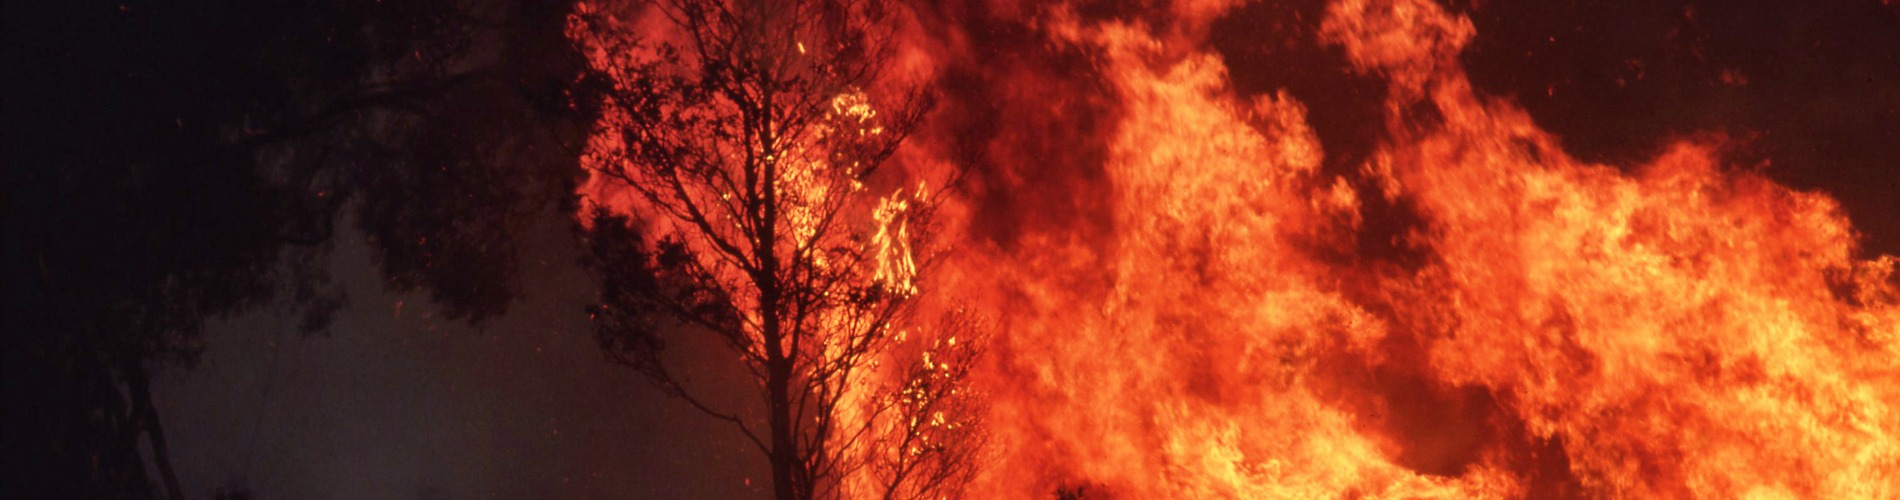 Fire ravaging trees in the dark